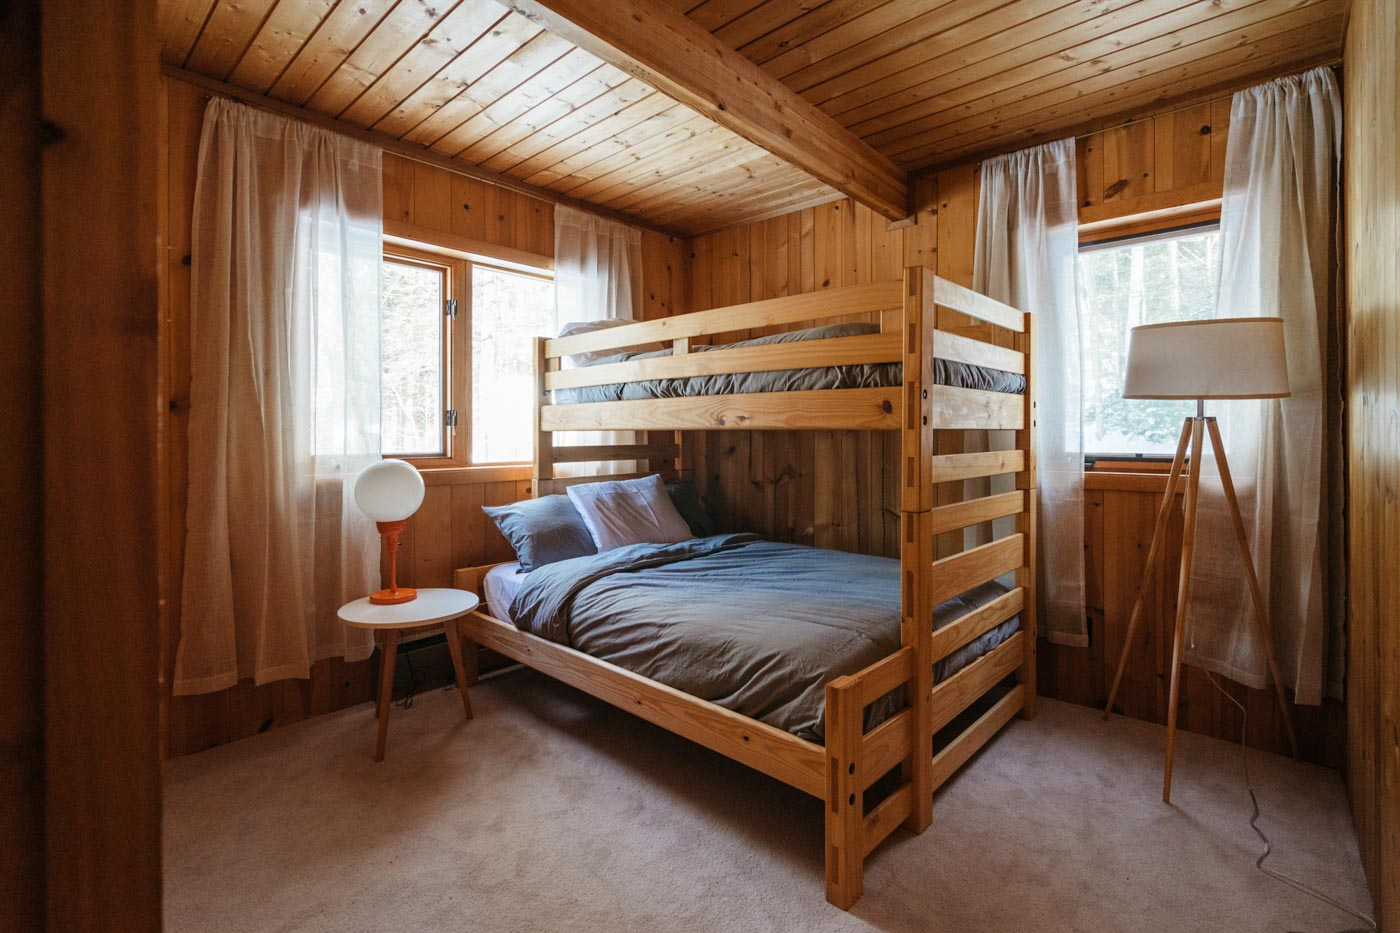 CabinGoals-WardsboroVT-natural-light-photography-studio-lifestyle-photoshoot-location-editorial-commercial-photography-1.jpg